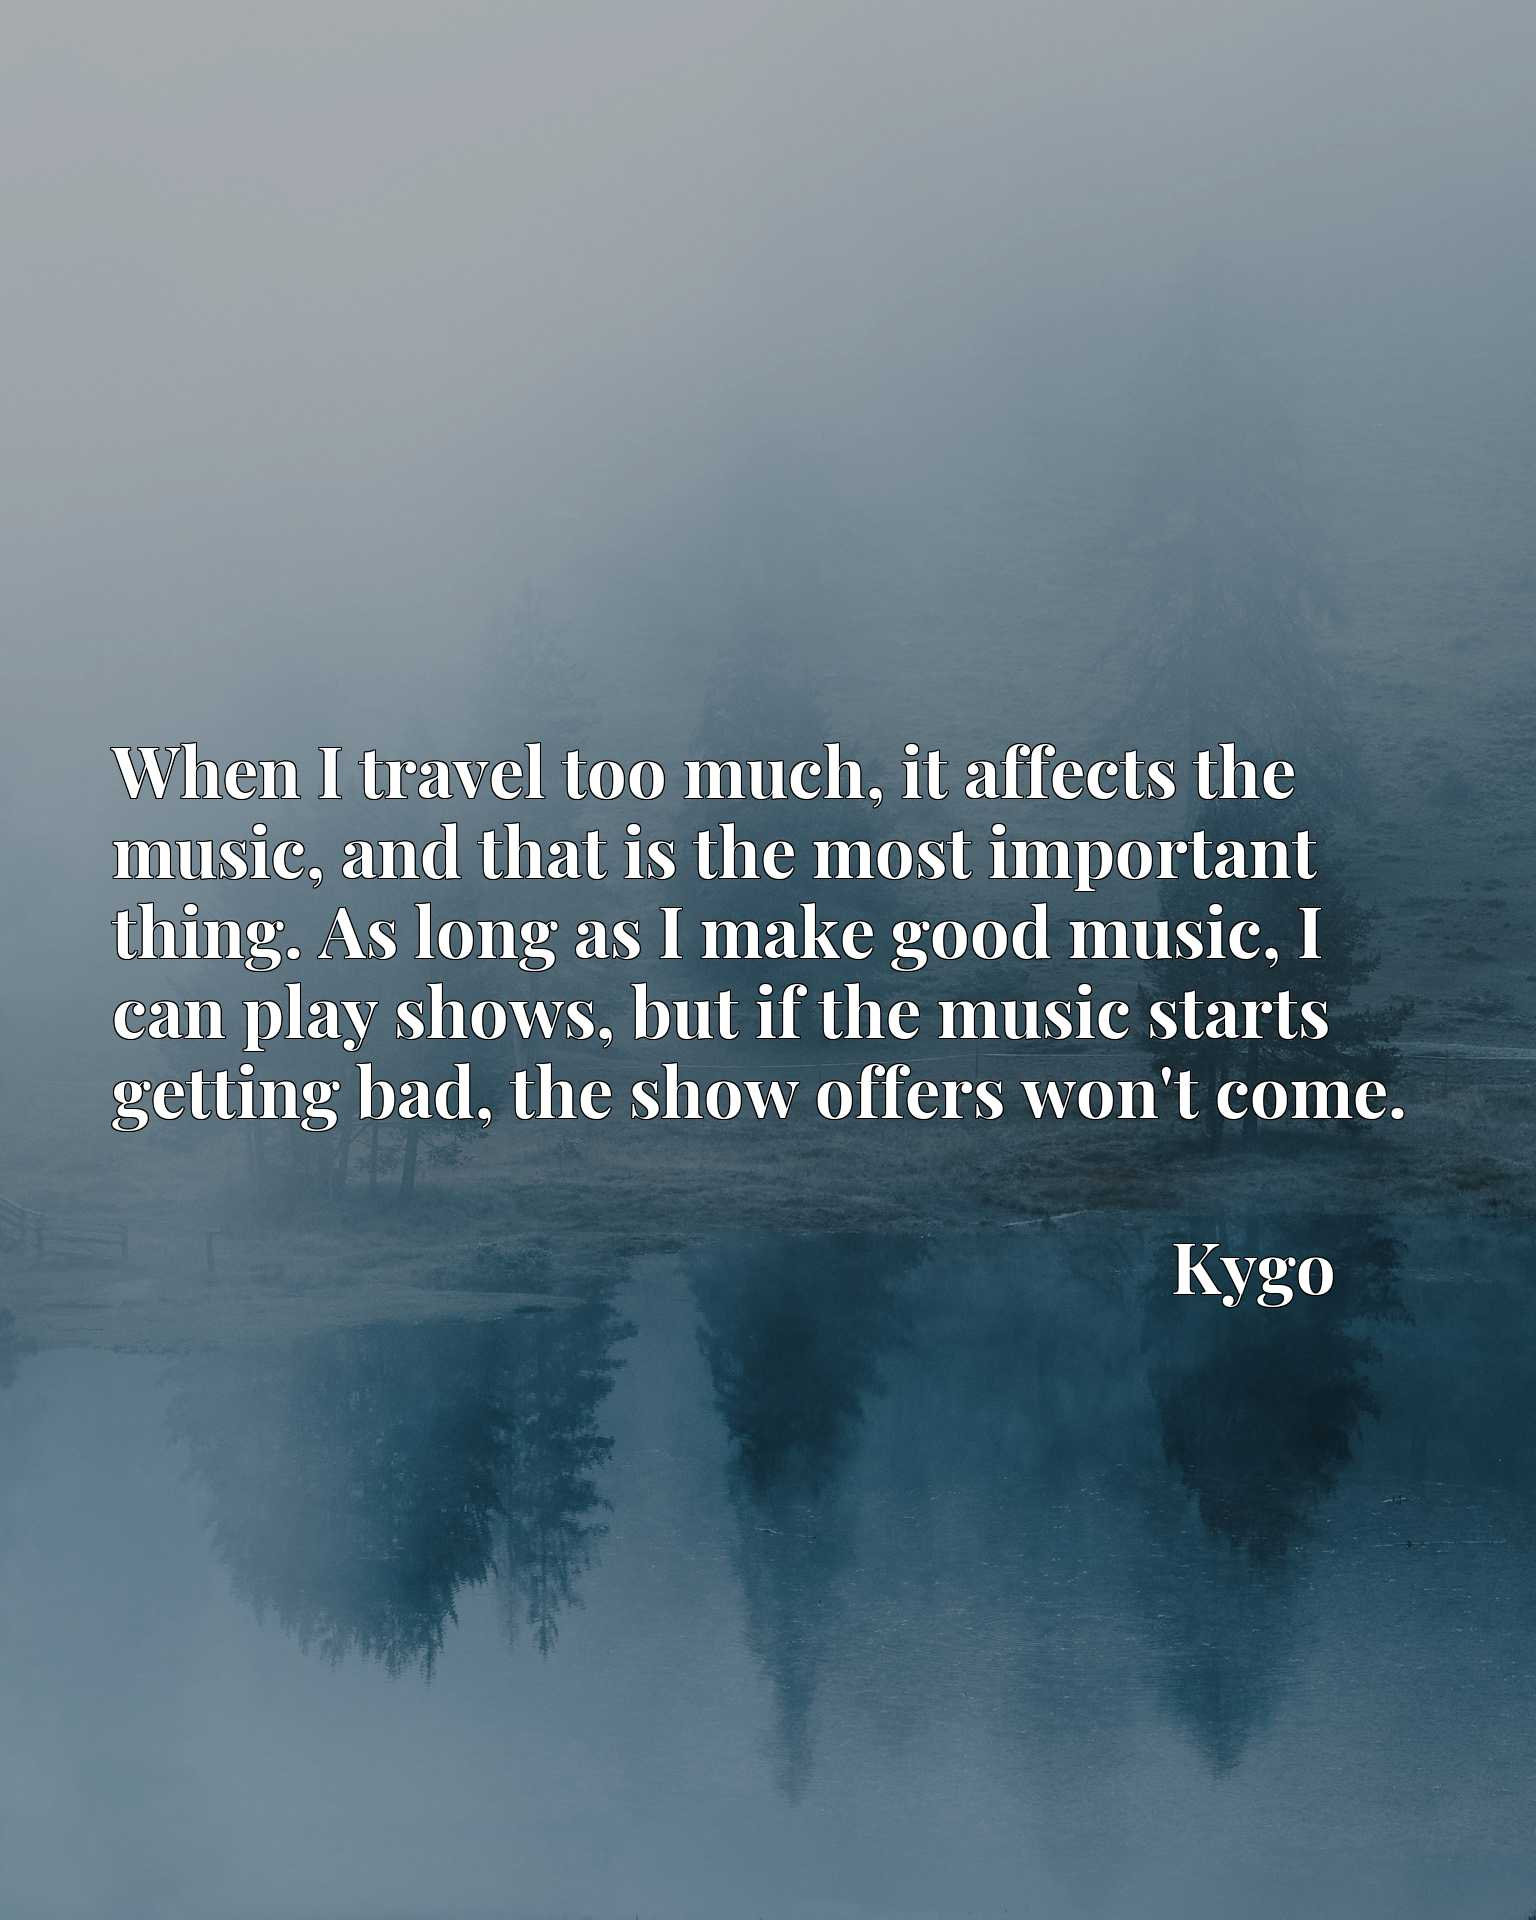 When I travel too much, it affects the music, and that is the most important thing. As long as I make good music, I can play shows, but if the music starts getting bad, the show offers won't come.